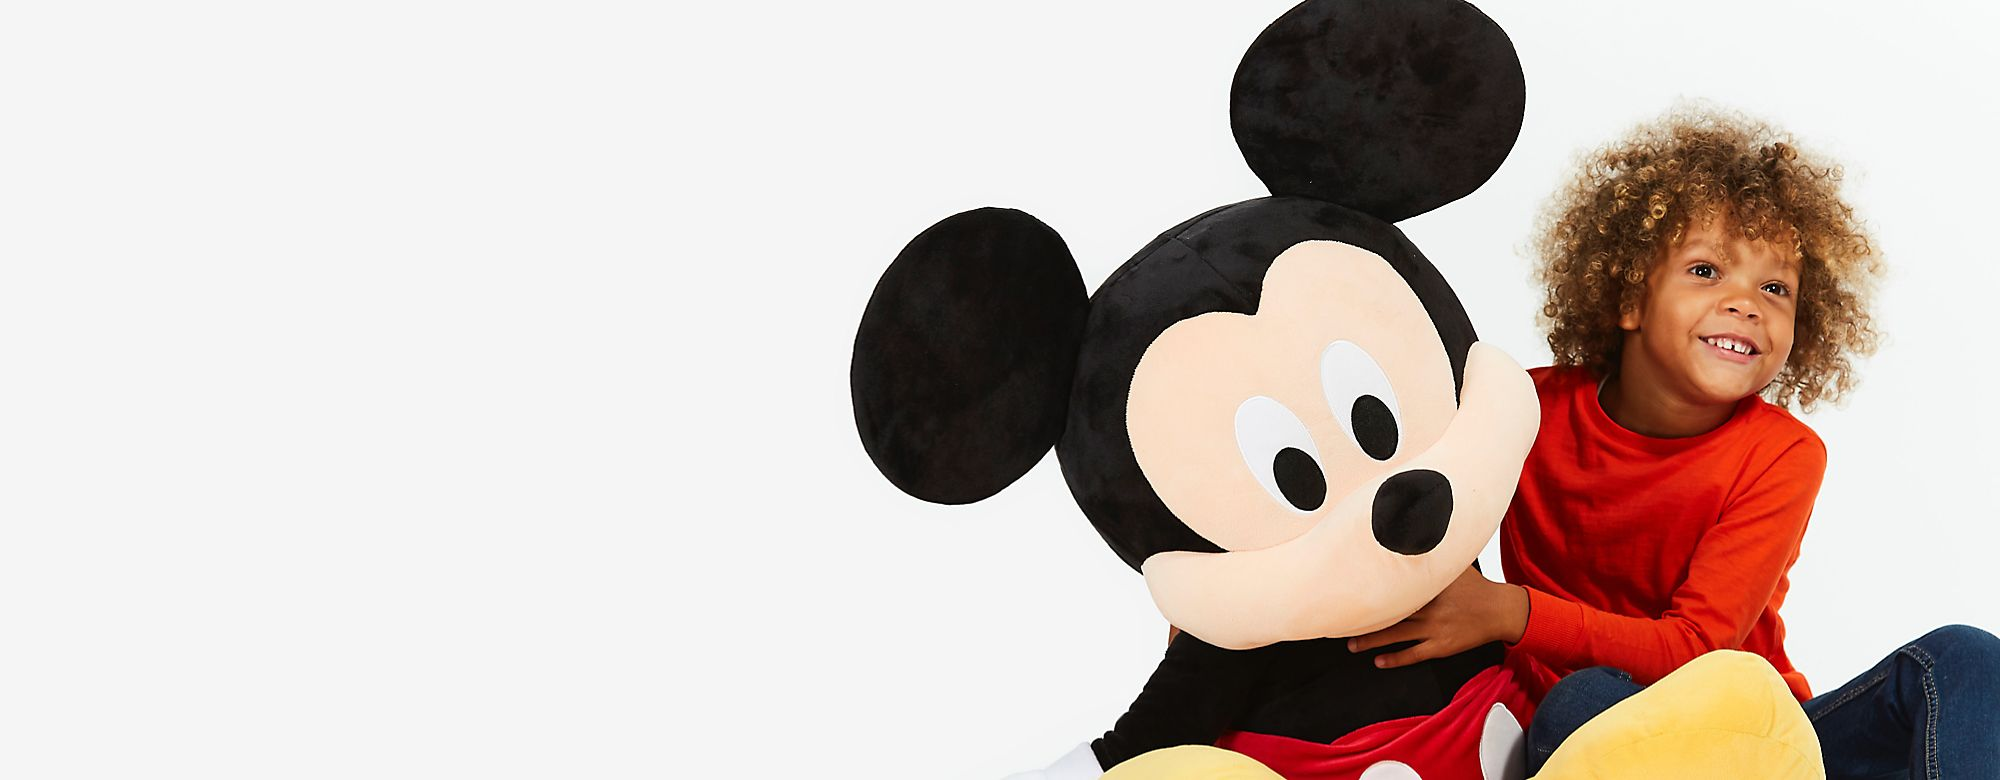 Disney All the best of Disney in one place EXPLORE MORE